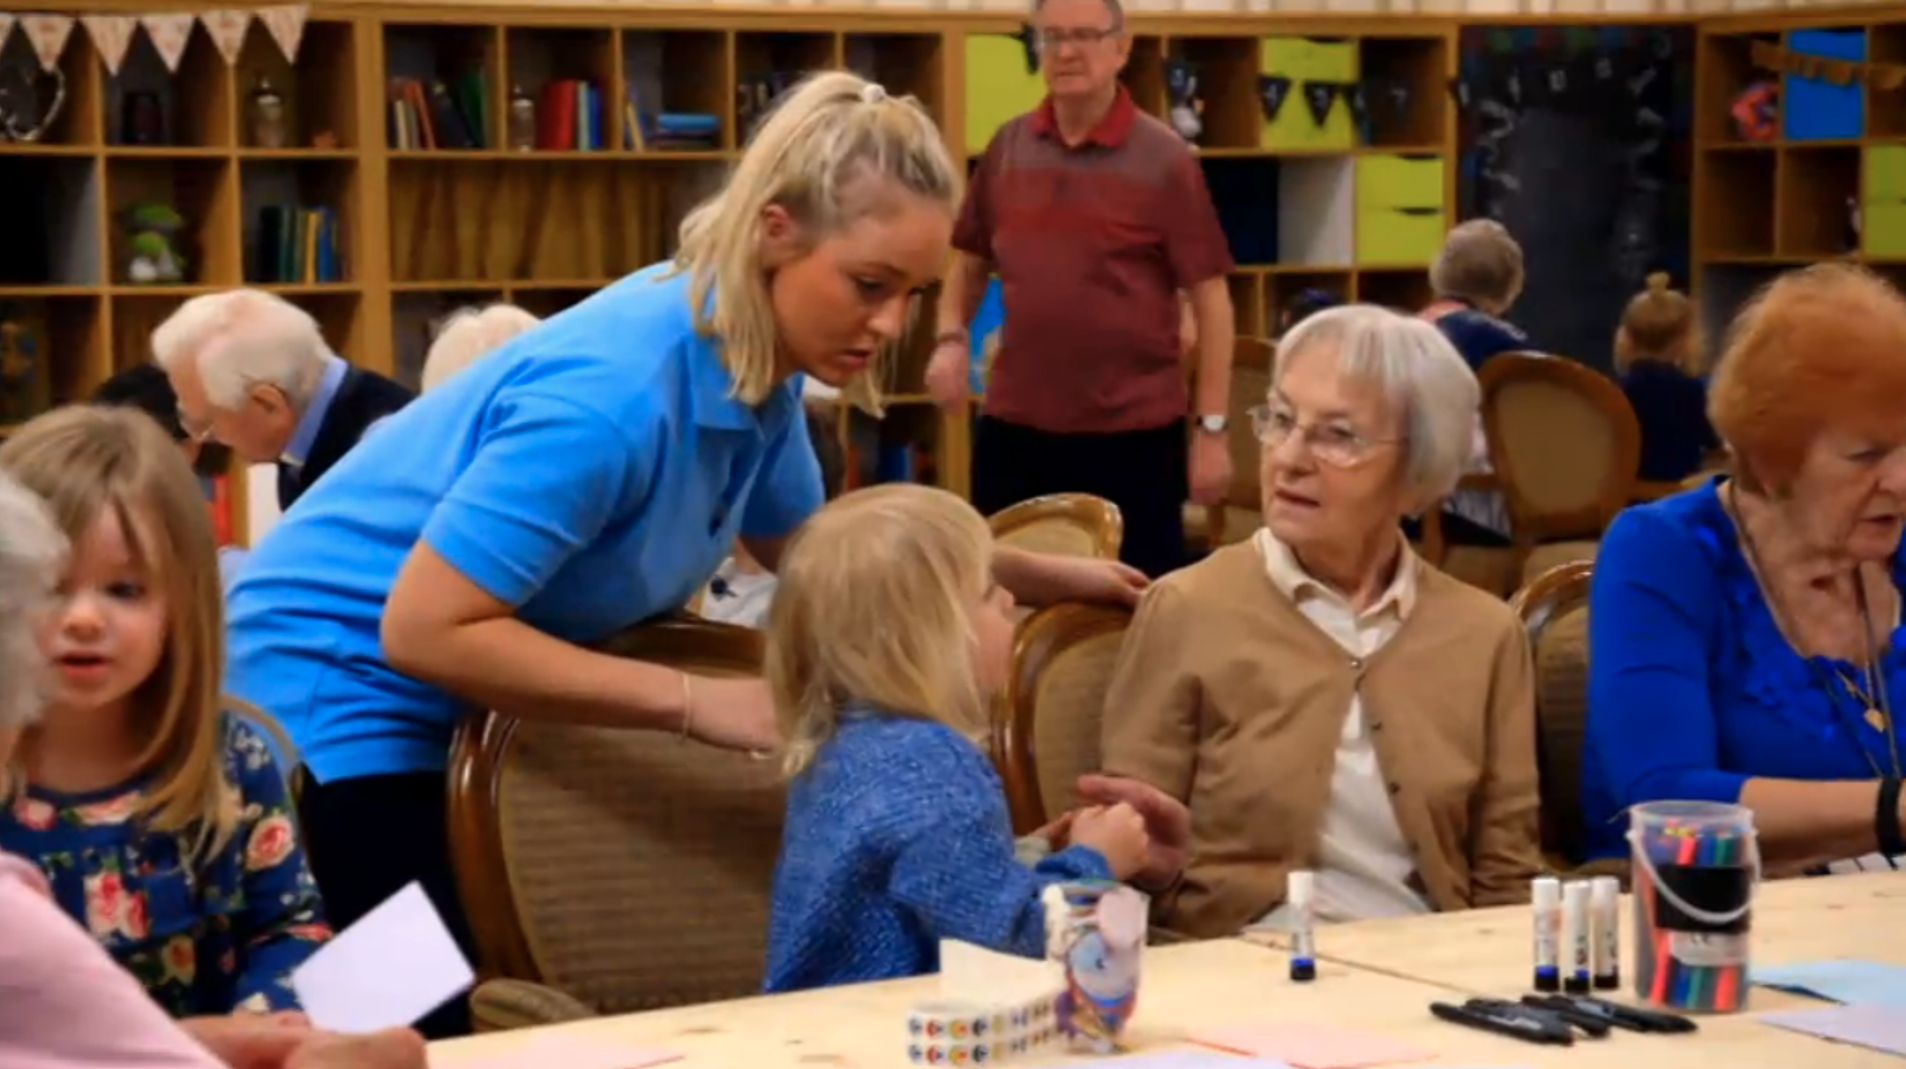 The first episode of Old People's Home For 4 Year Olds had Twitter in pieces